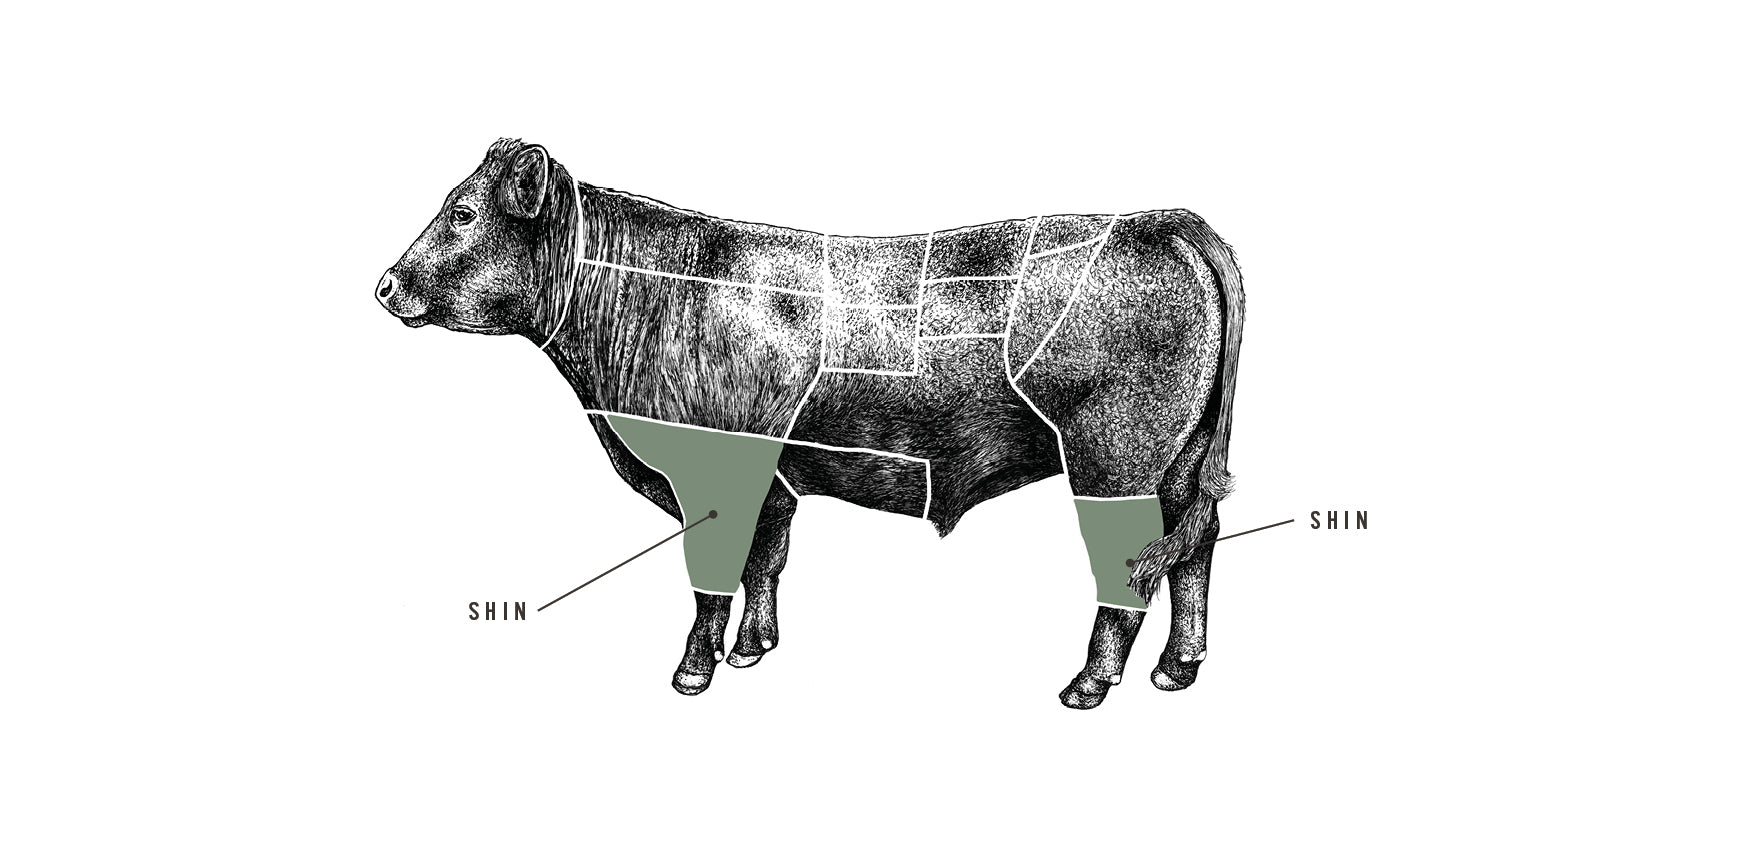 Grass Fed Diced Beef Shin meat cuts diagram